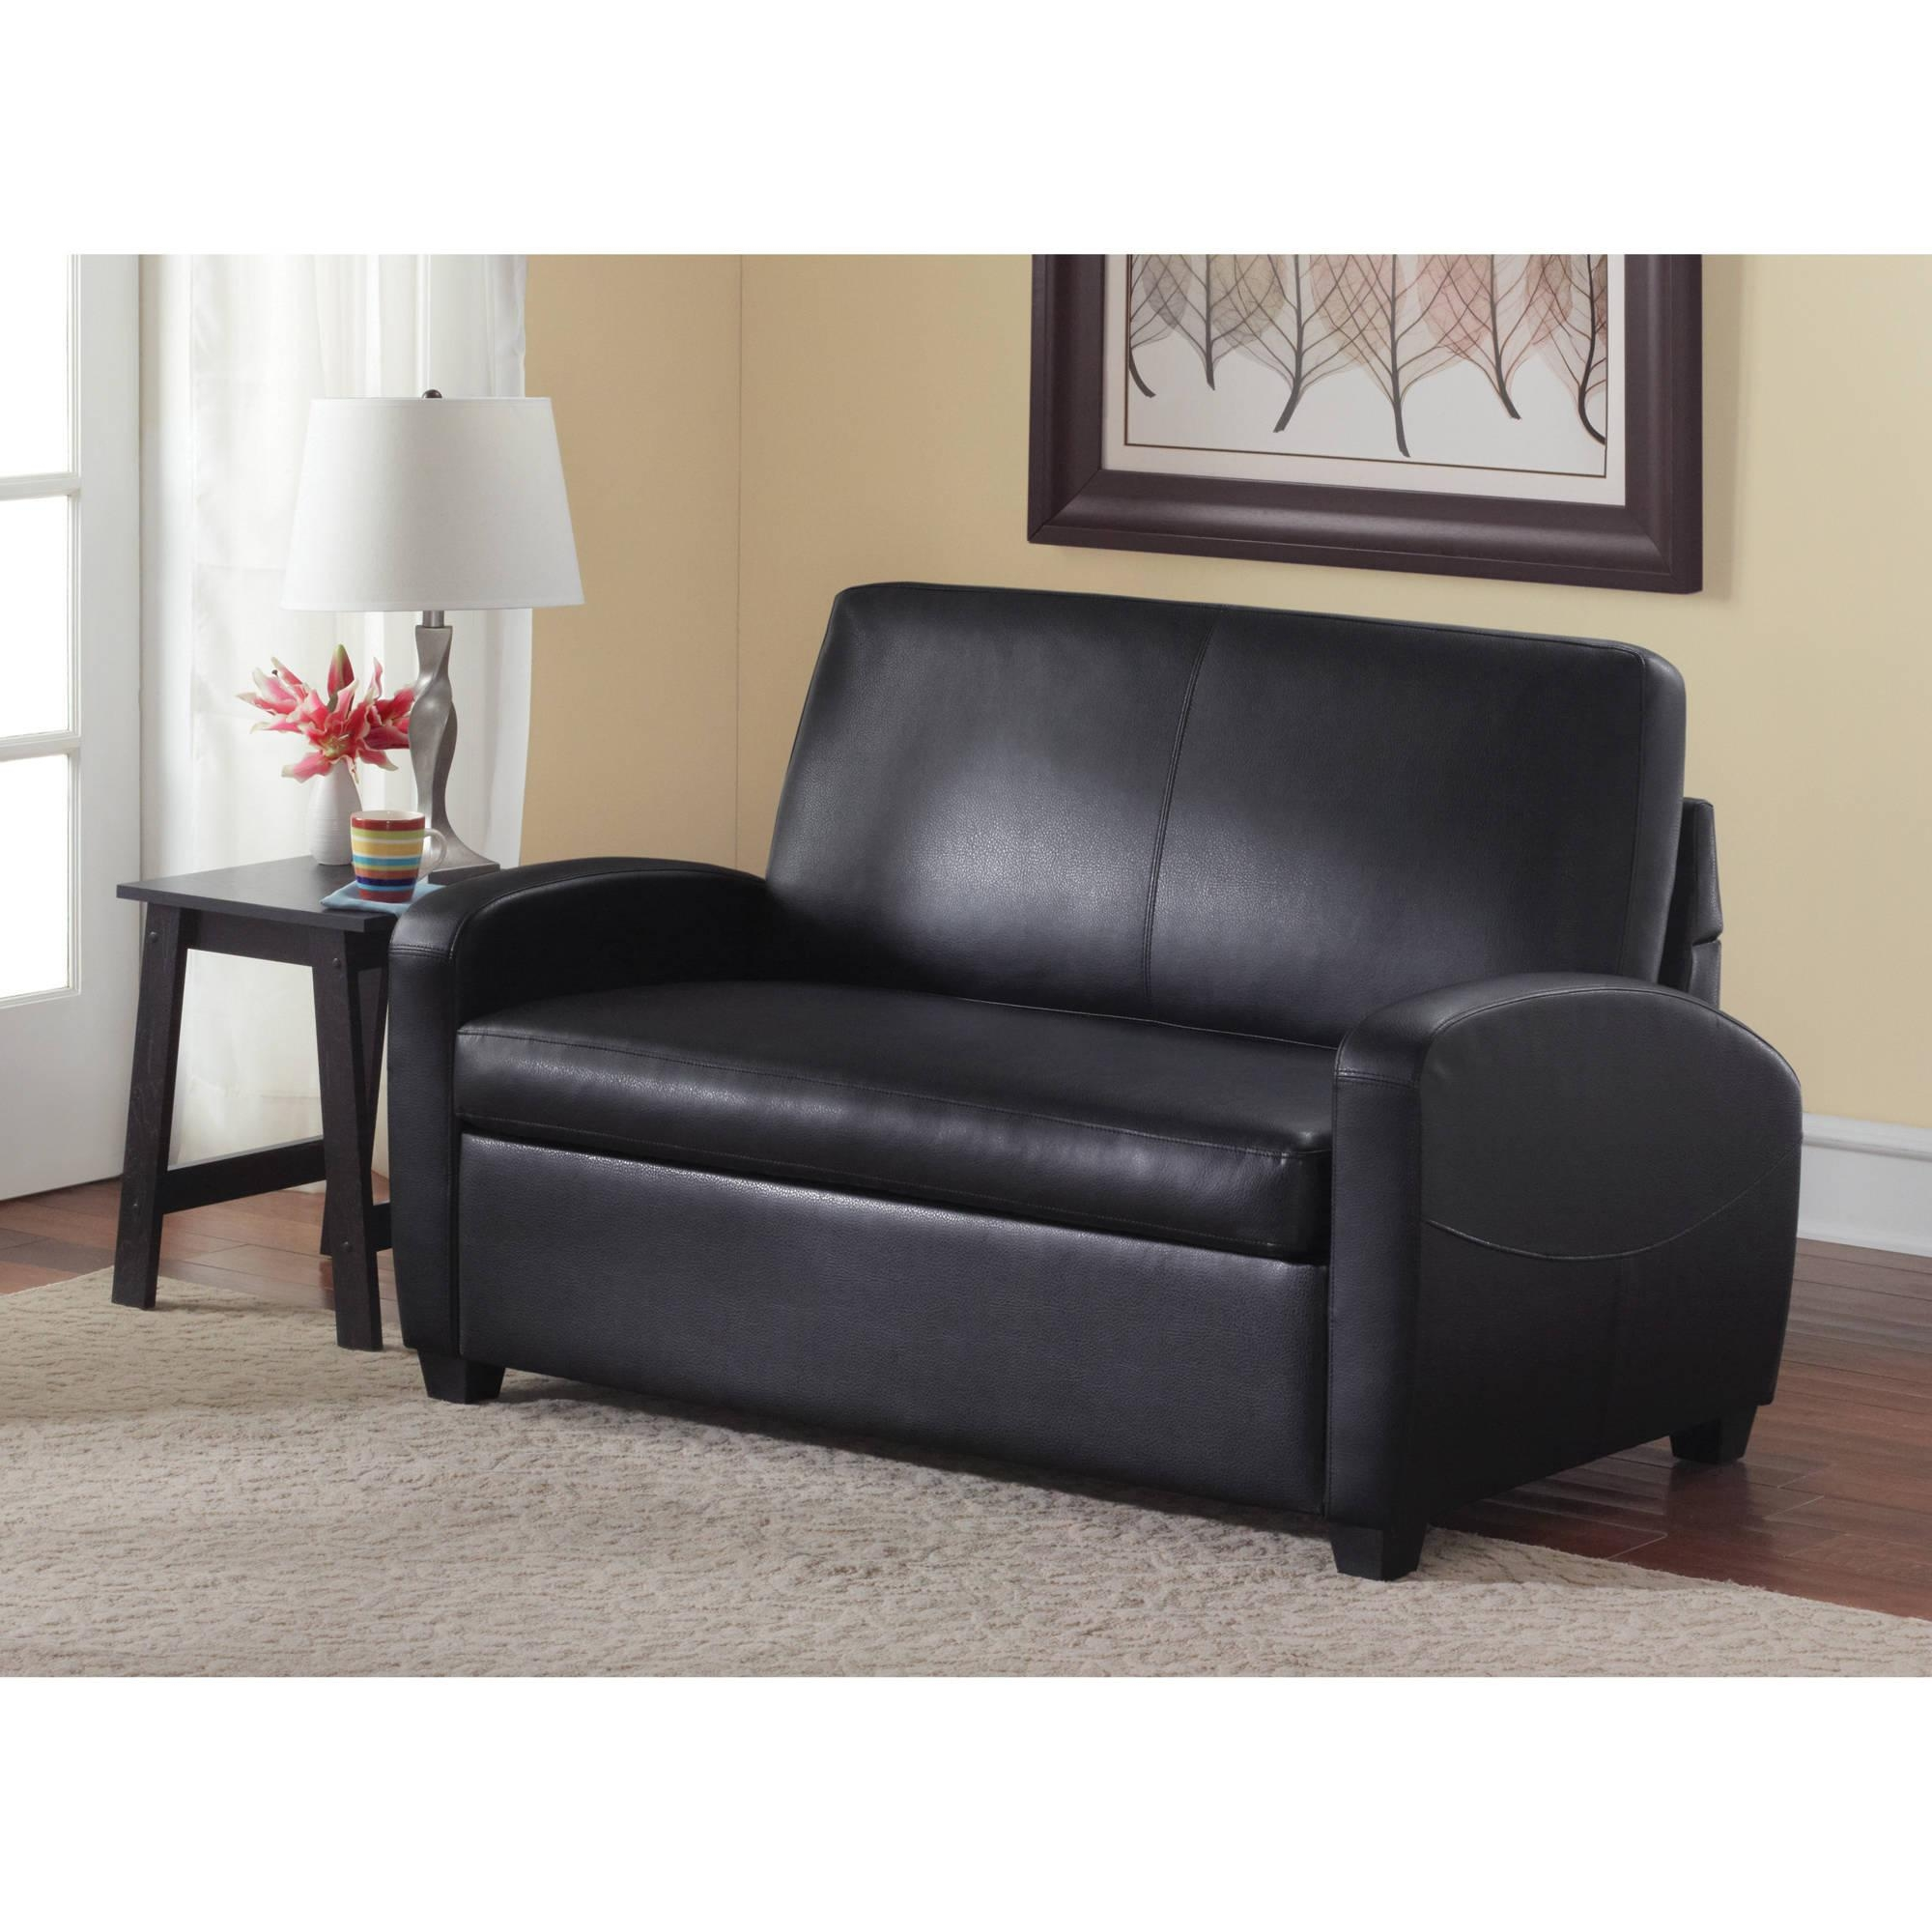 Mainstays Sofa Sleeper, Black – Walmart With Mainstays Sleeper Sofas (View 2 of 20)